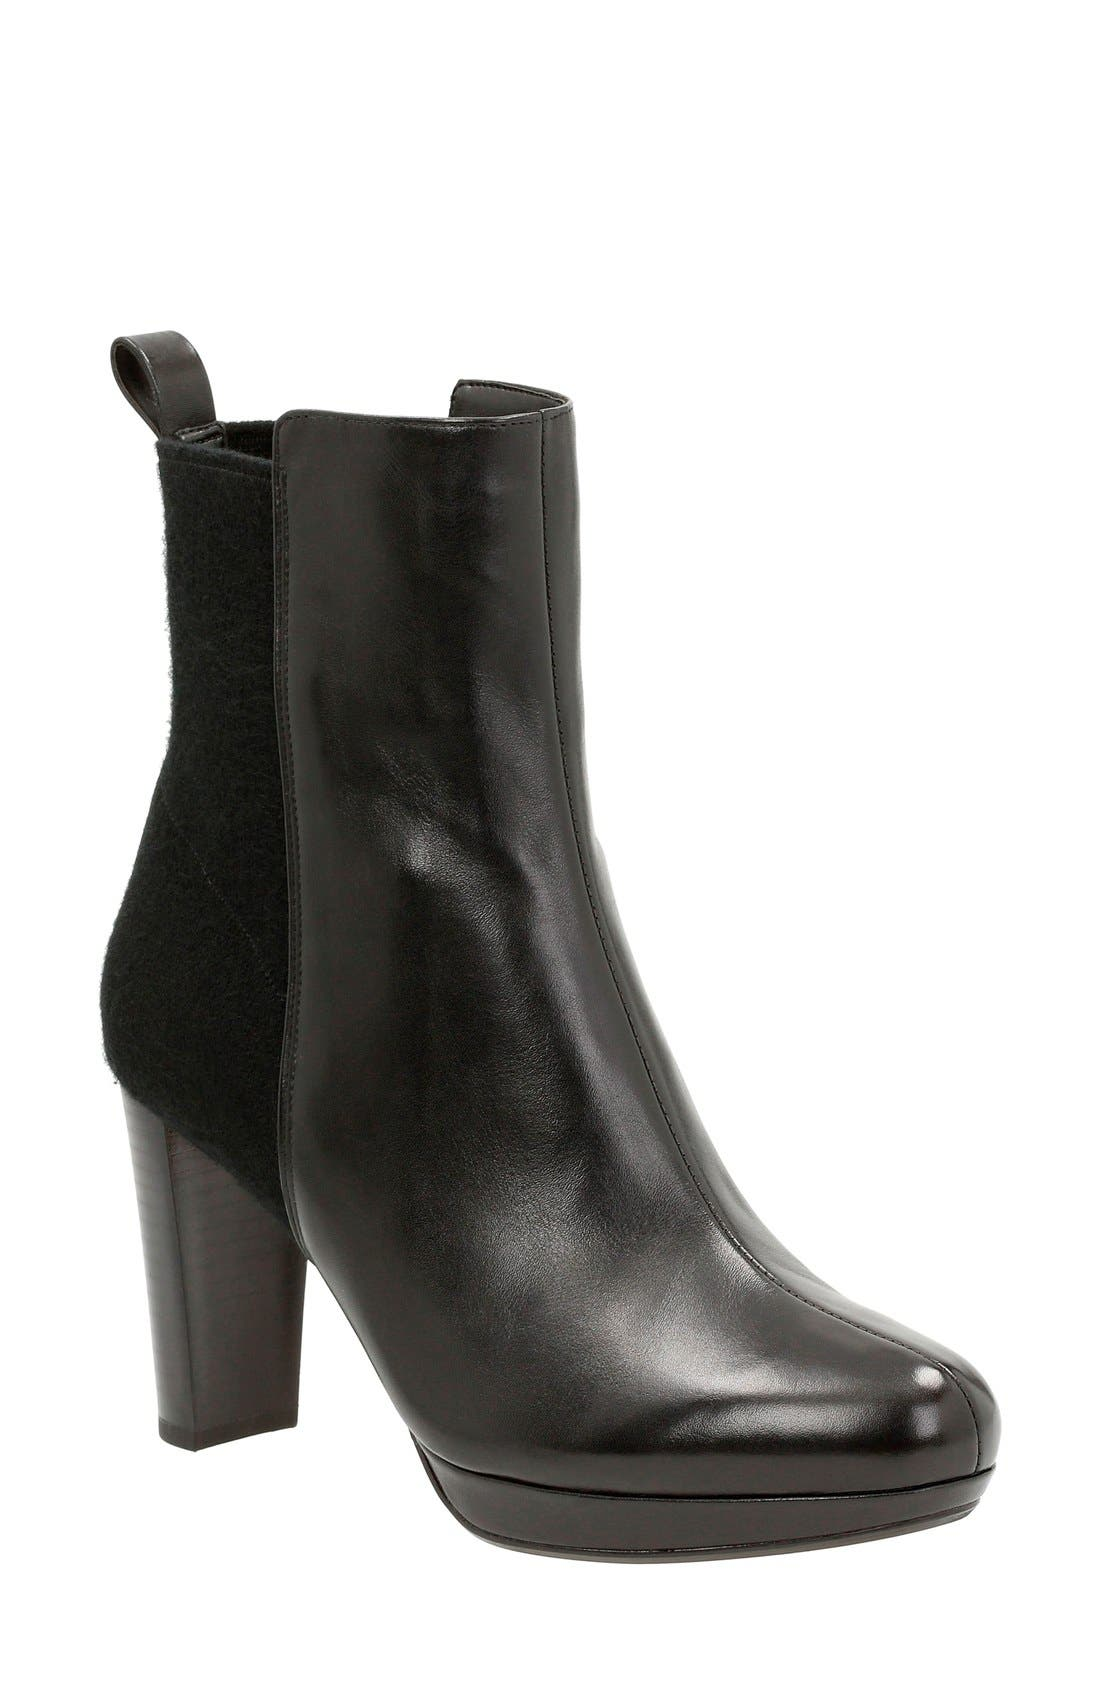 Main Image - Clarks® 'Kendra Porter' Ankle Boot (Women)